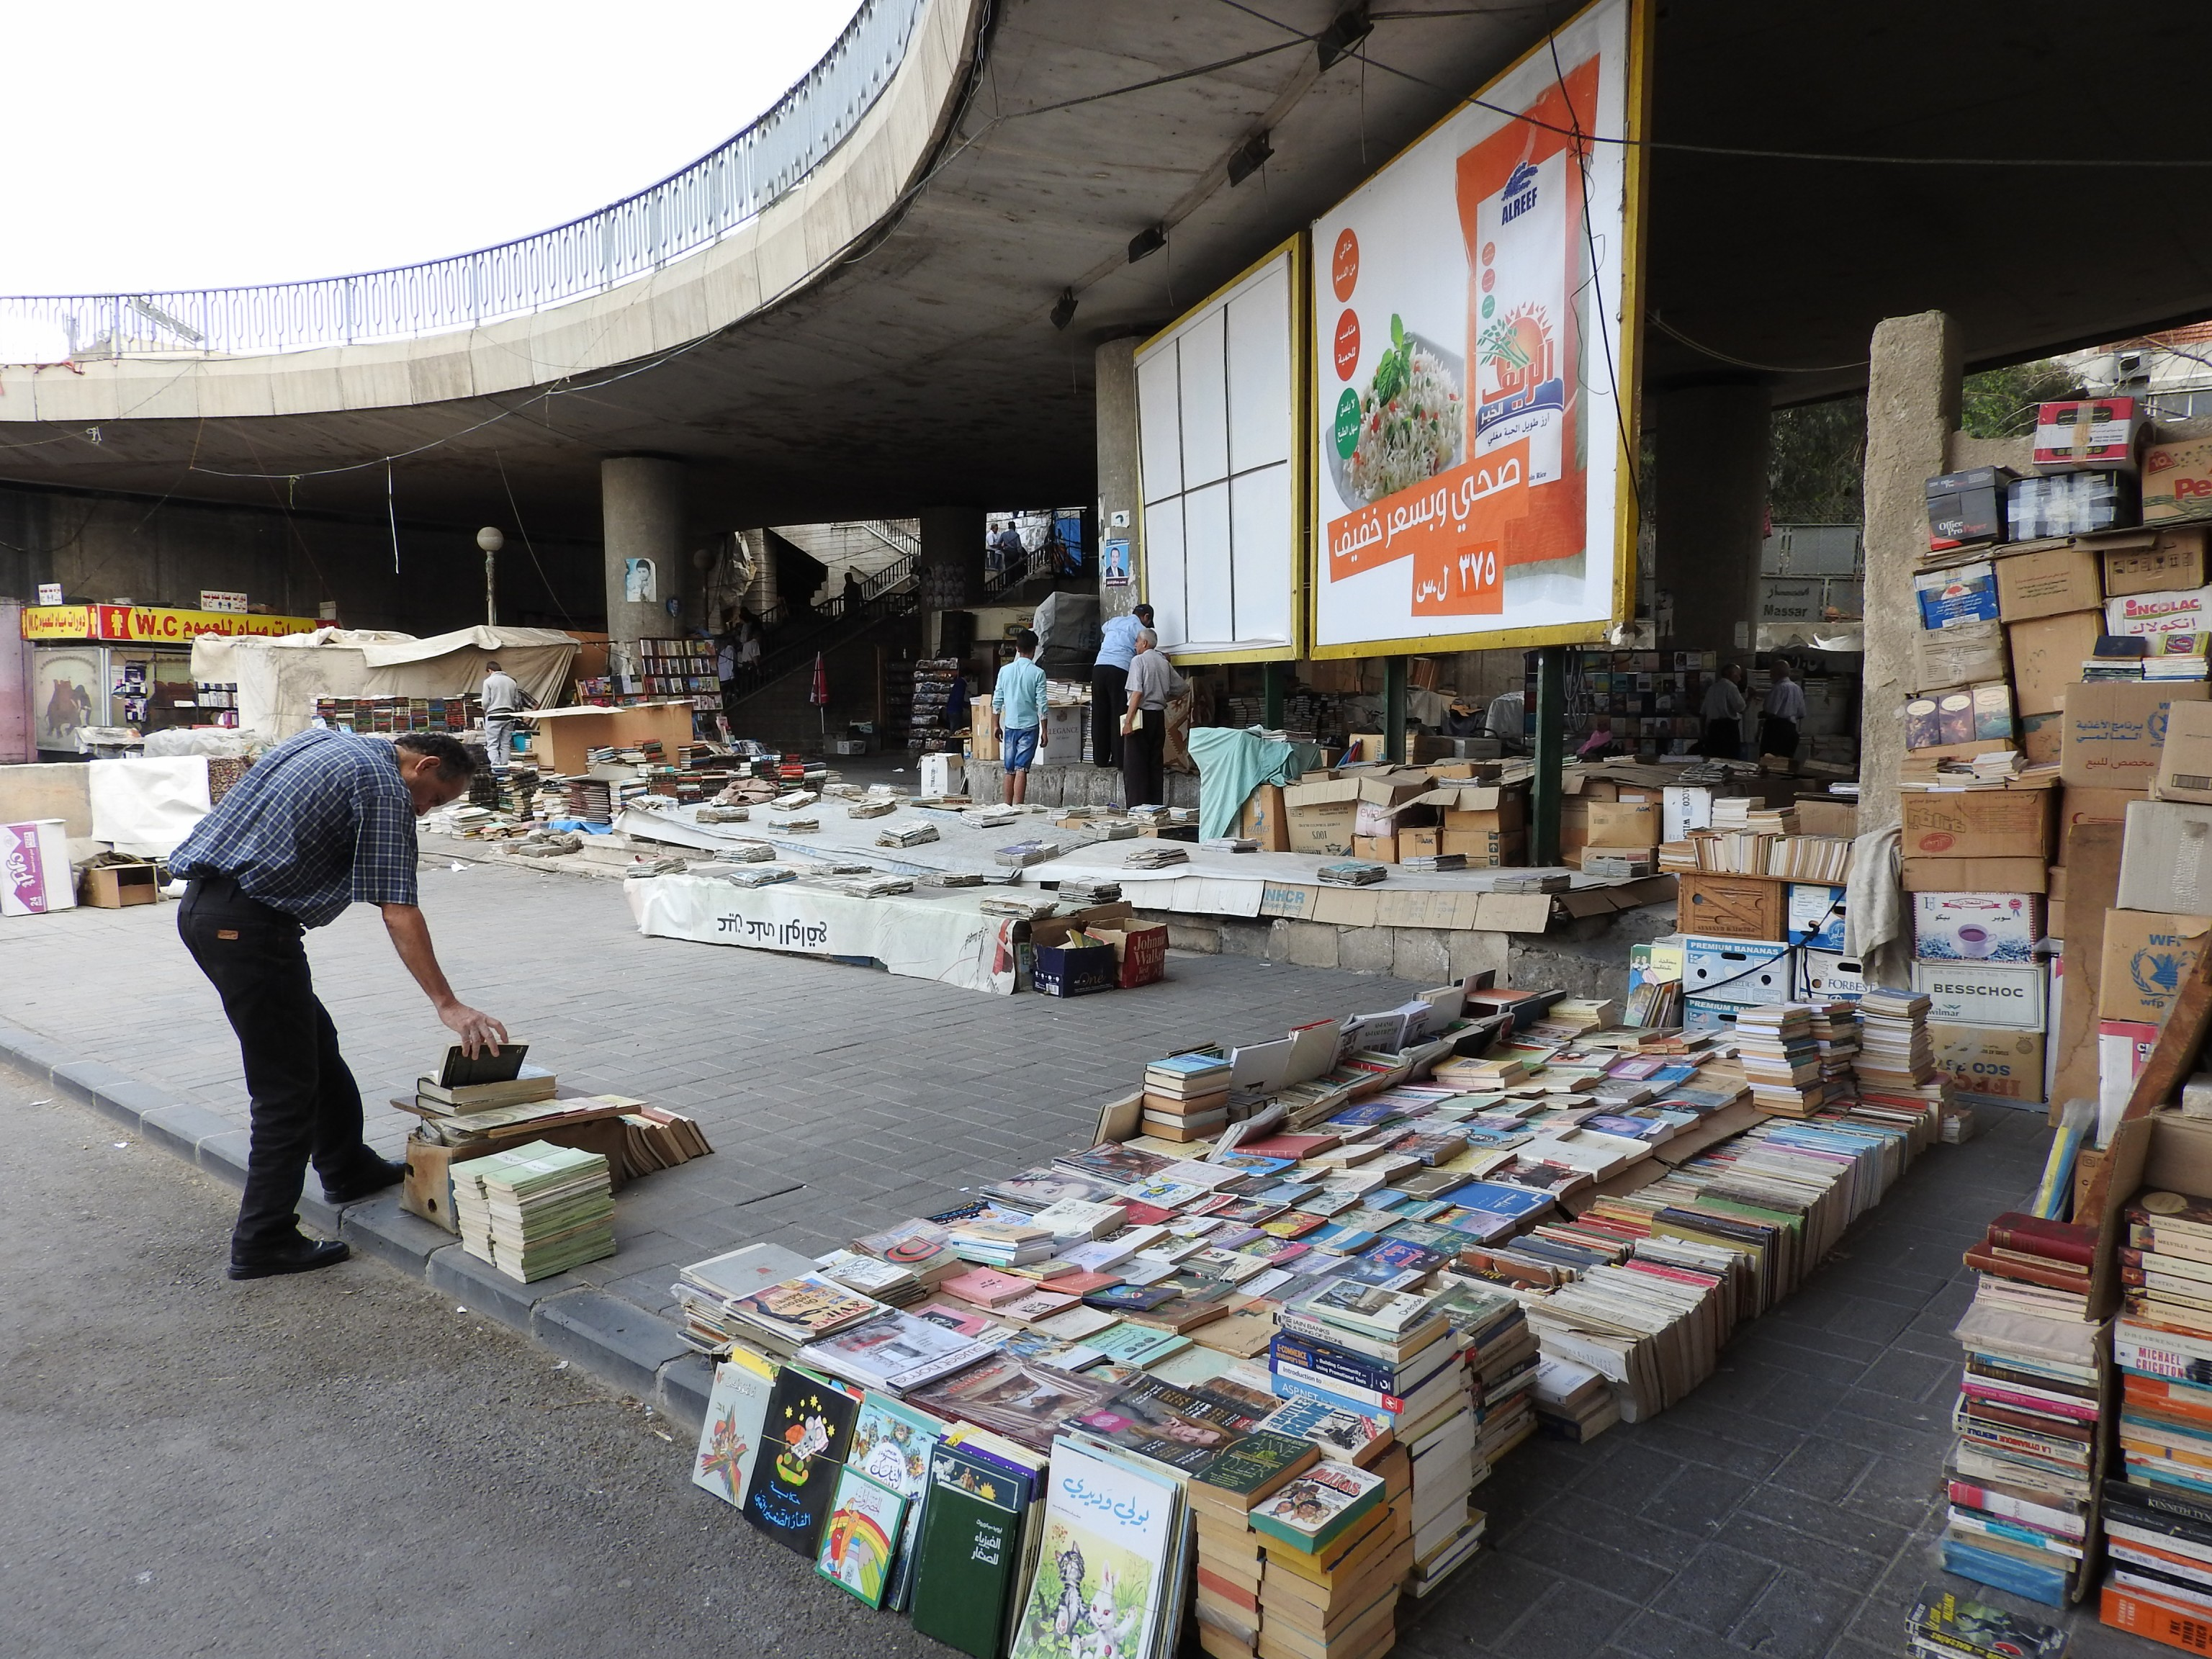 The book market near the President's Bridge and Damascus Univeristy is an institution in Damascus, known to book lovers who can't afford bookstores. It is one Damascus venue which refused to shut down over the years, mortars or not. In addition to its Arabic books, one can find English language books and cookbooks, English literature, popular English-language thrillers and taudry romance novels.